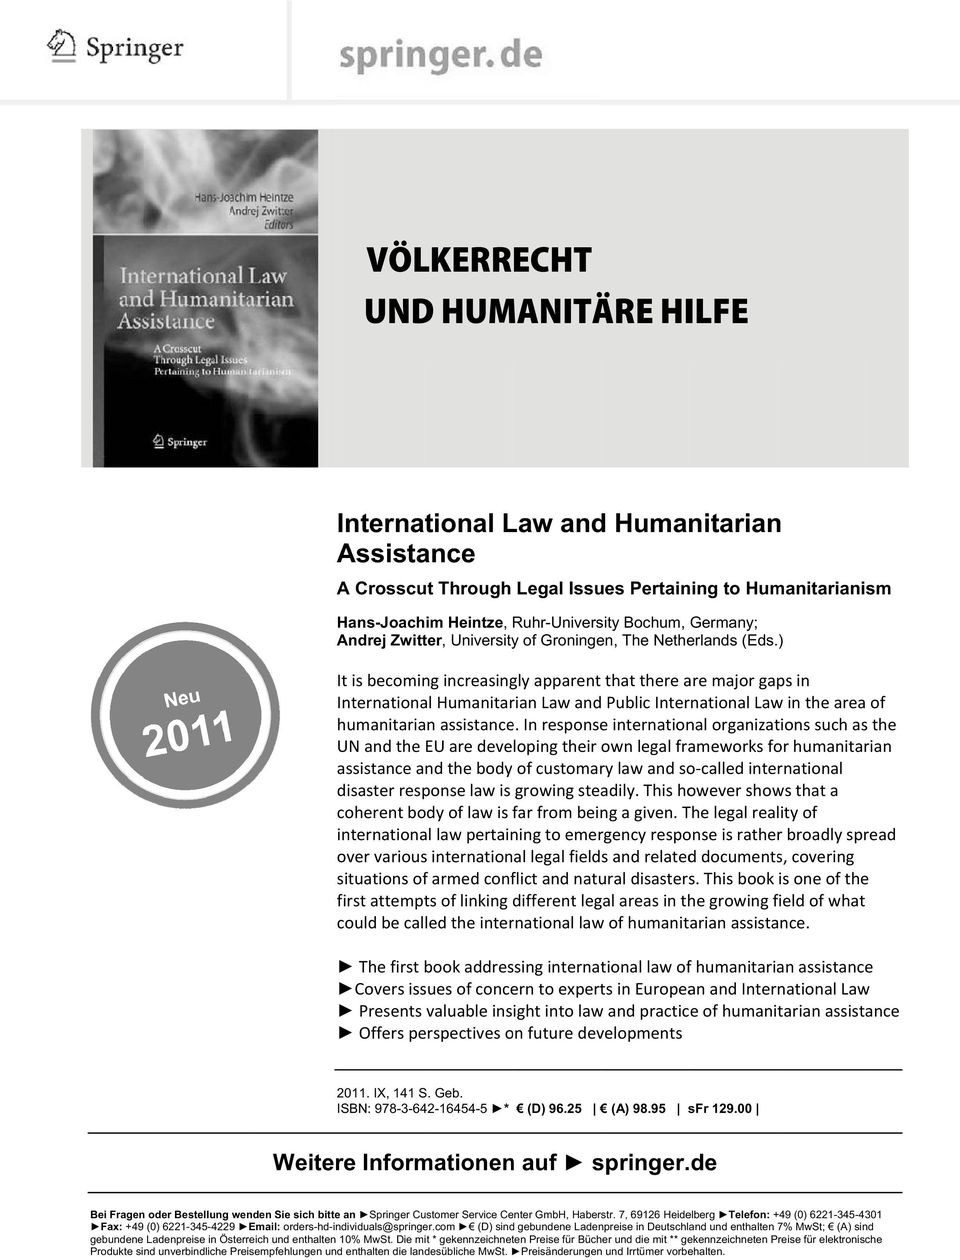 ) It is becoming increasingly apparent that there are major gaps in International Humanitarian Law and Public International Law in the area of humanitarian assistance.